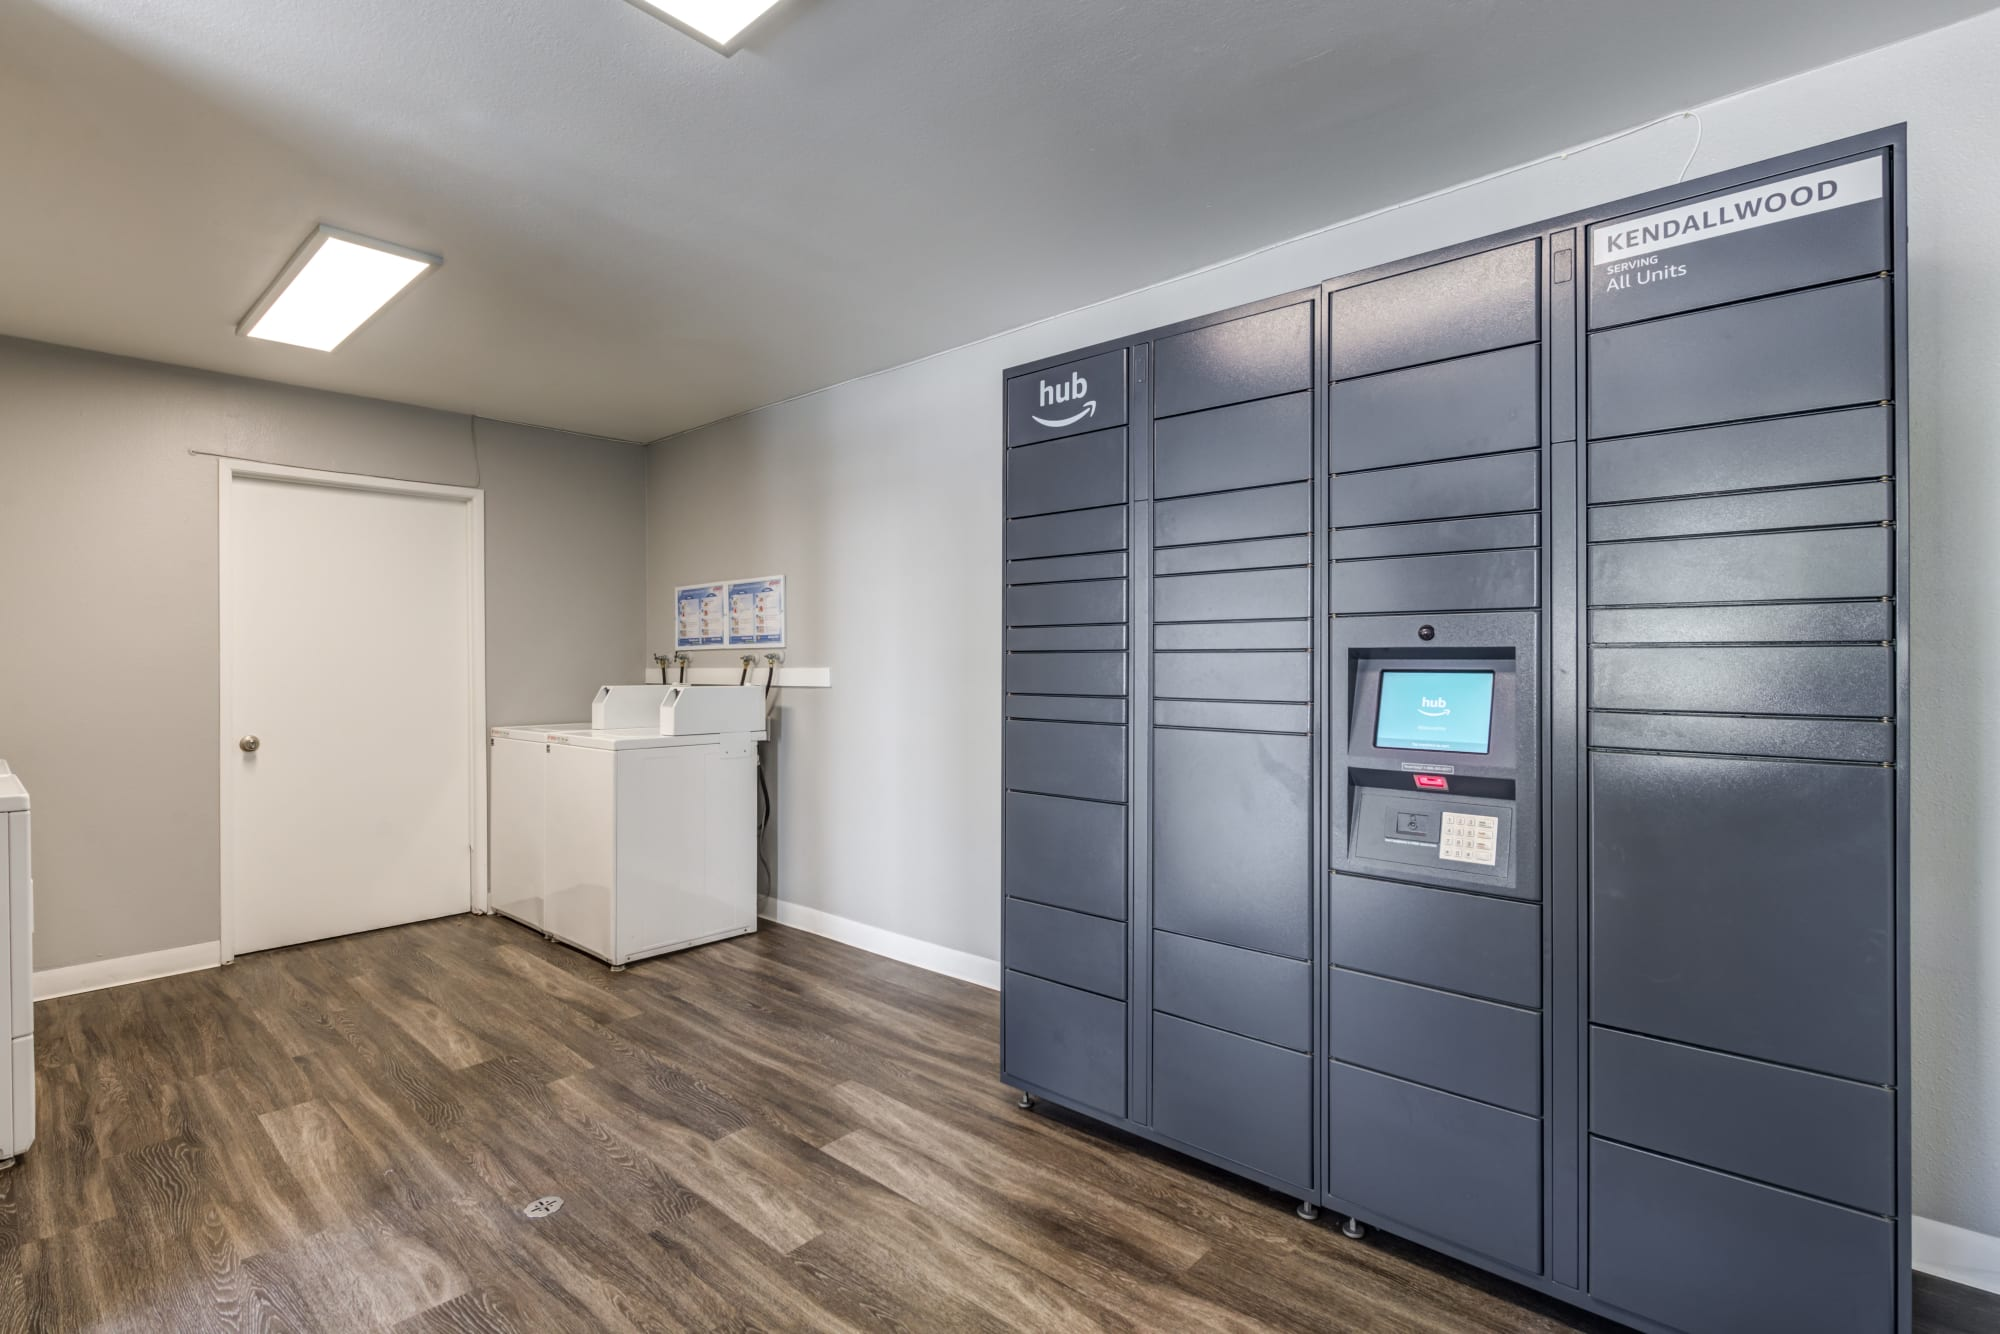 Package lockers at Kendallwood Apartments in Whittier, California